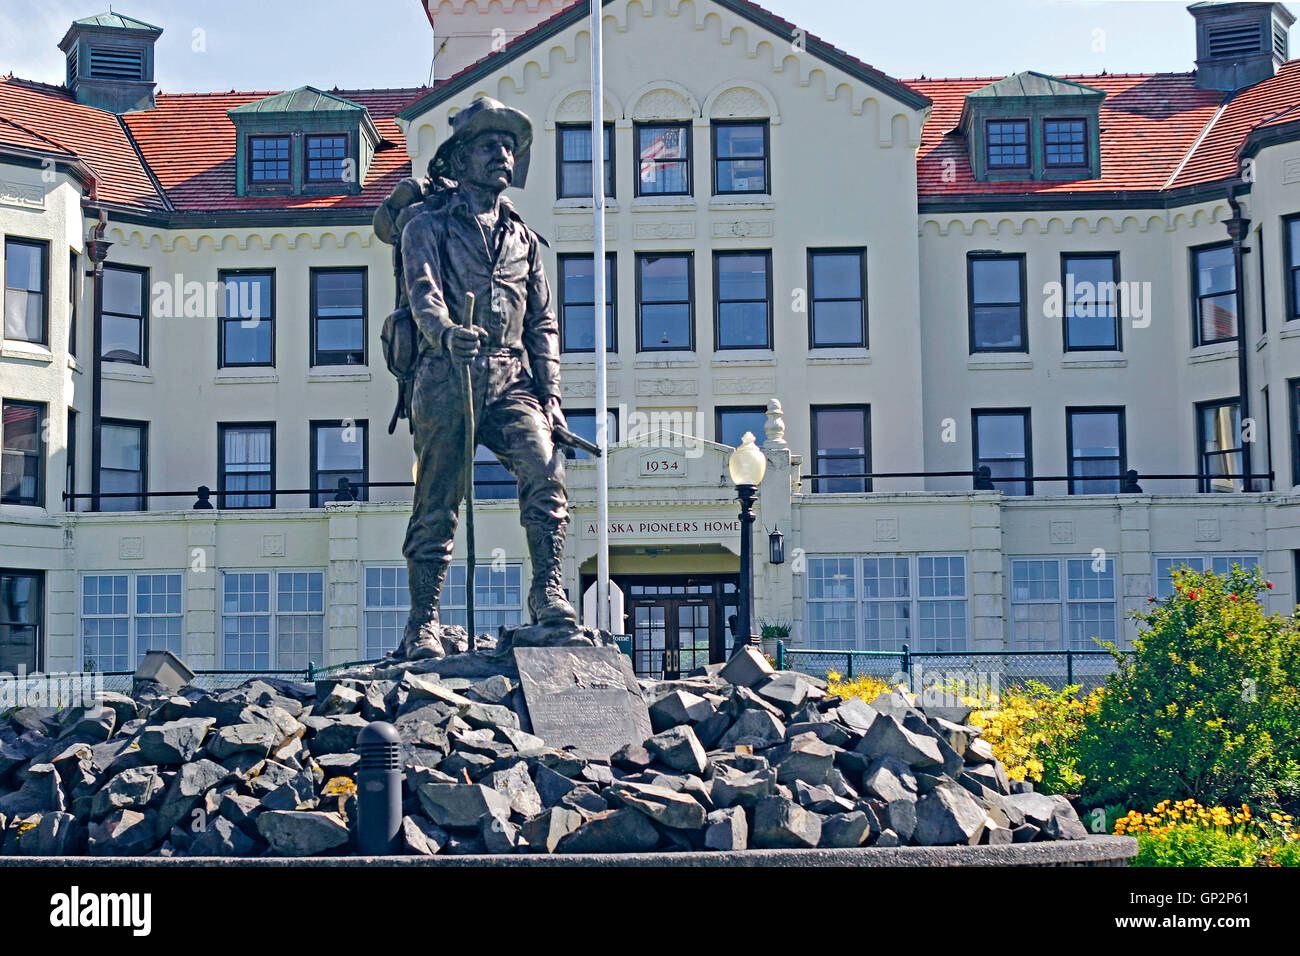 Statue 'The Prospector' Alaska Pioneers Home Sitka Alaska Inside Passage Southeast Alaska USA - Stock Image